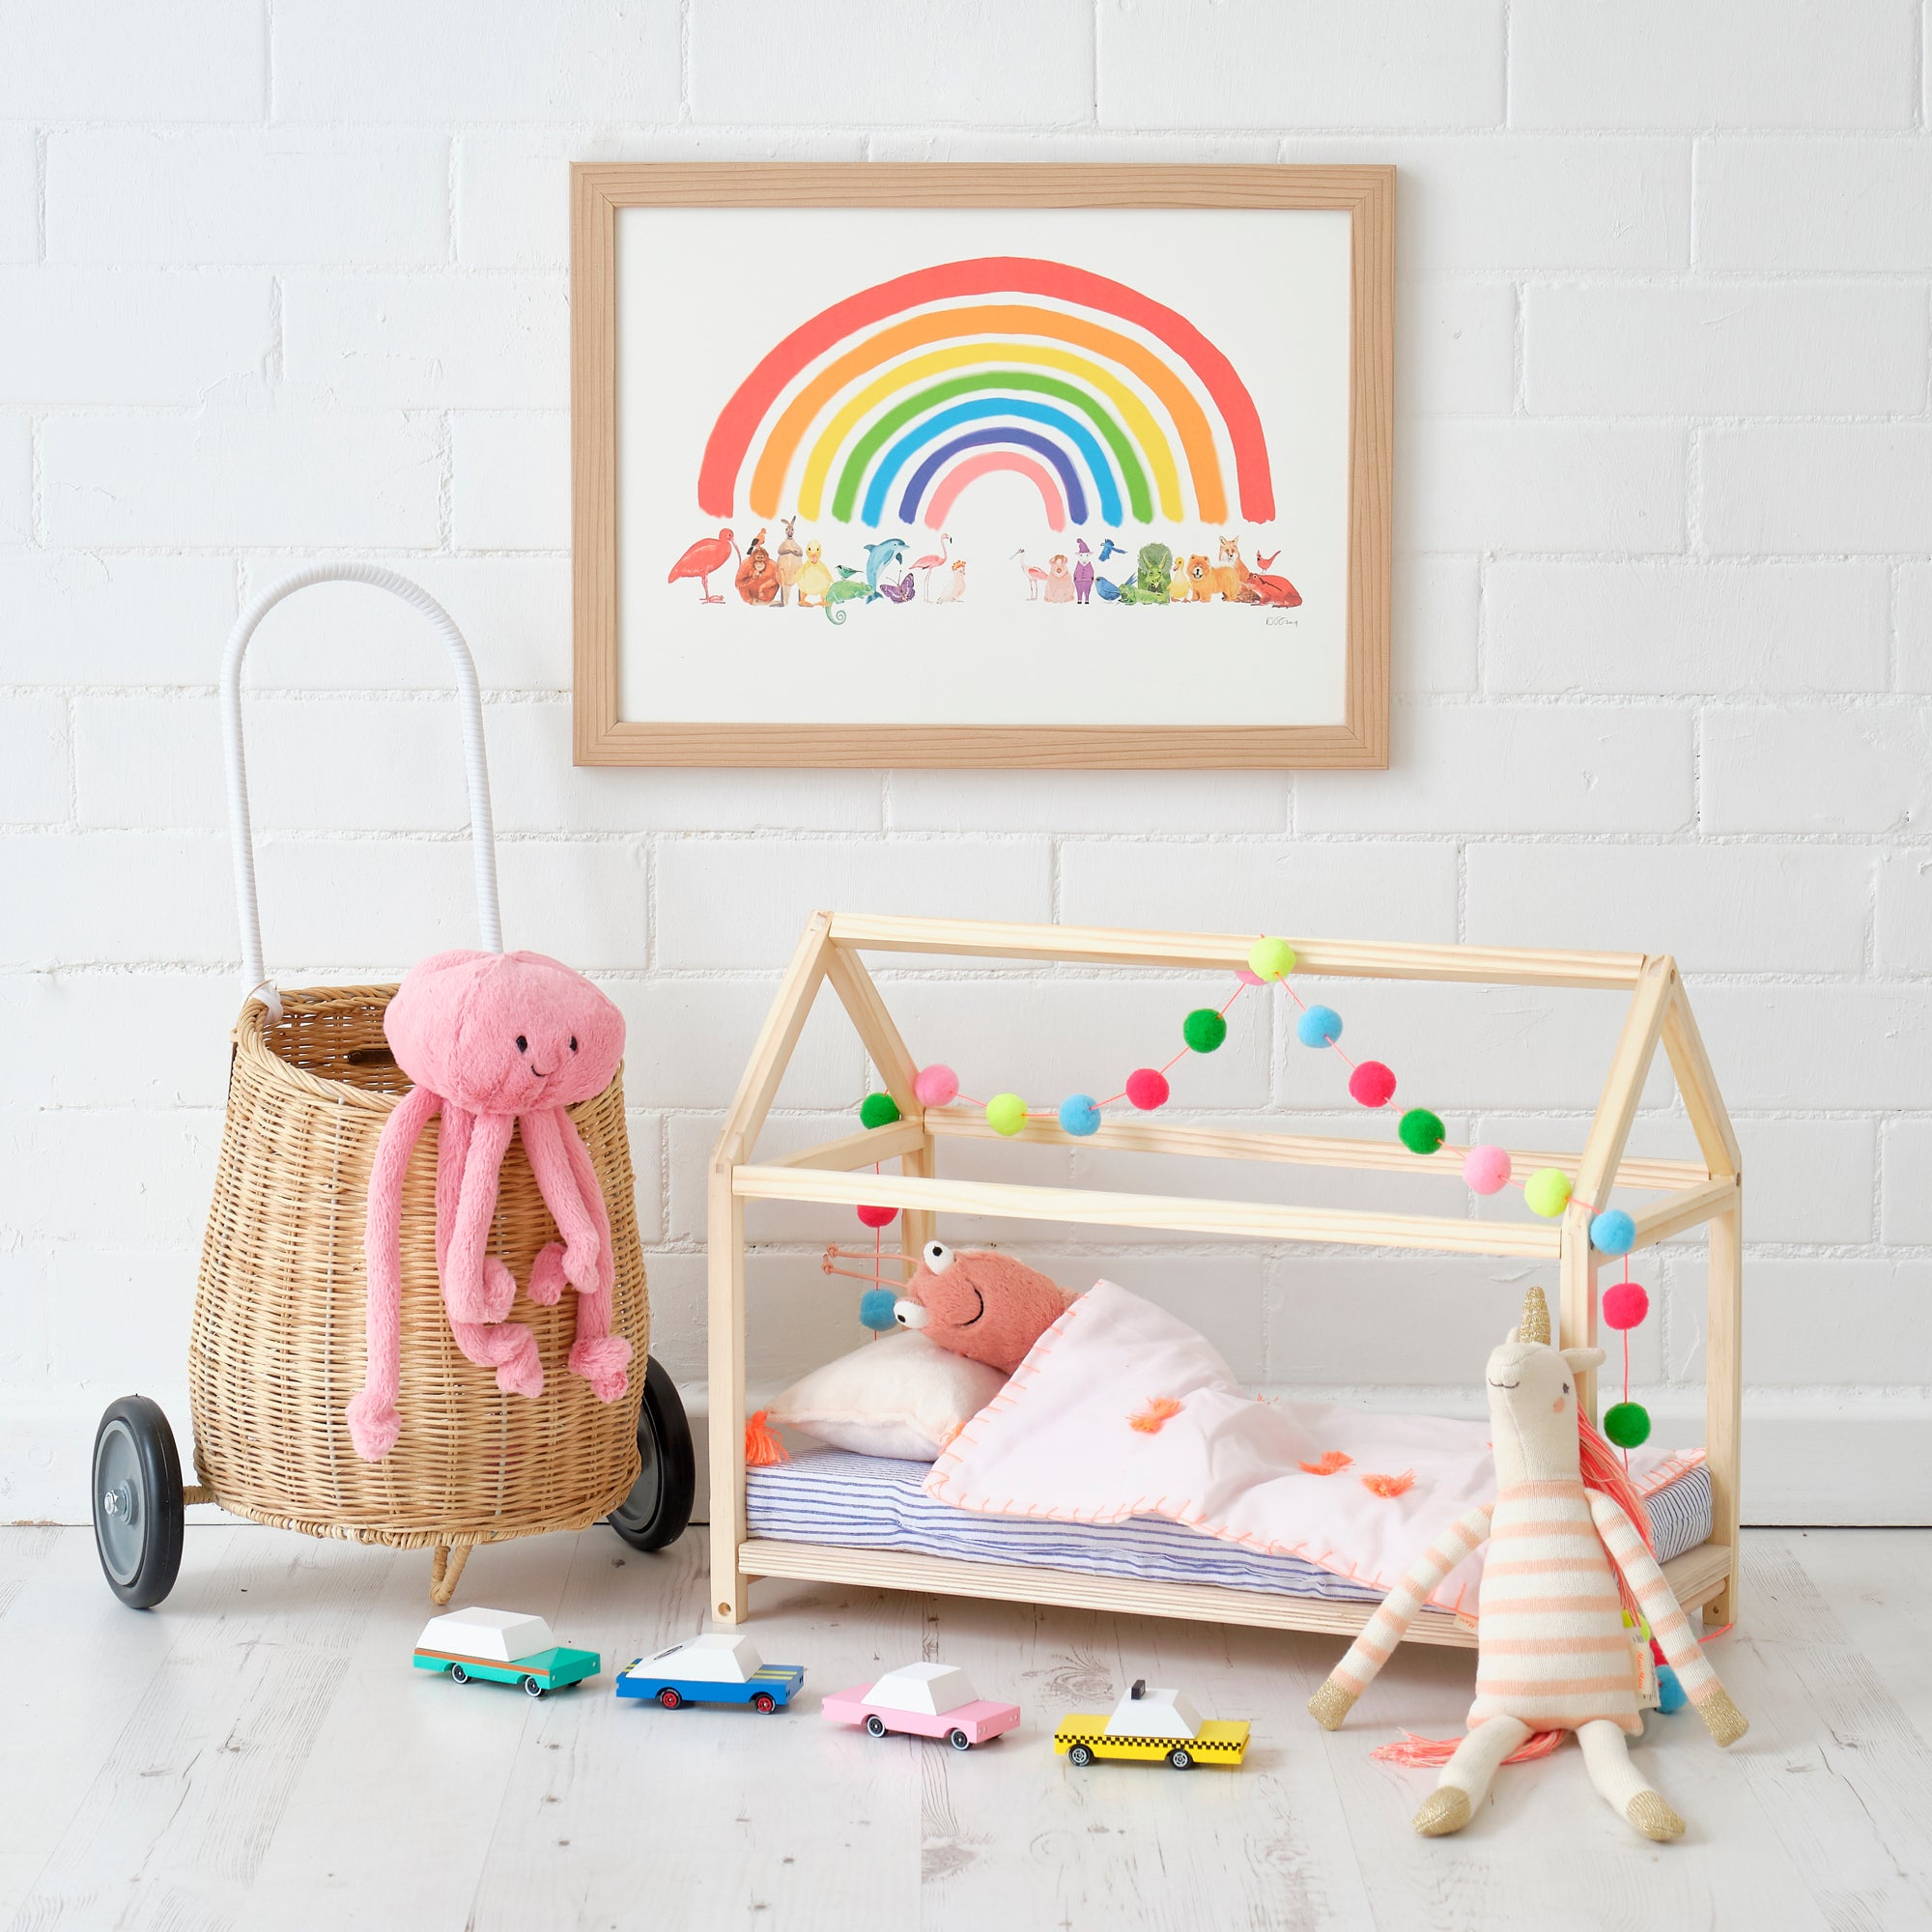 Dolls House Bed, Toys and Accessories, styled by Bobby Rabbit.